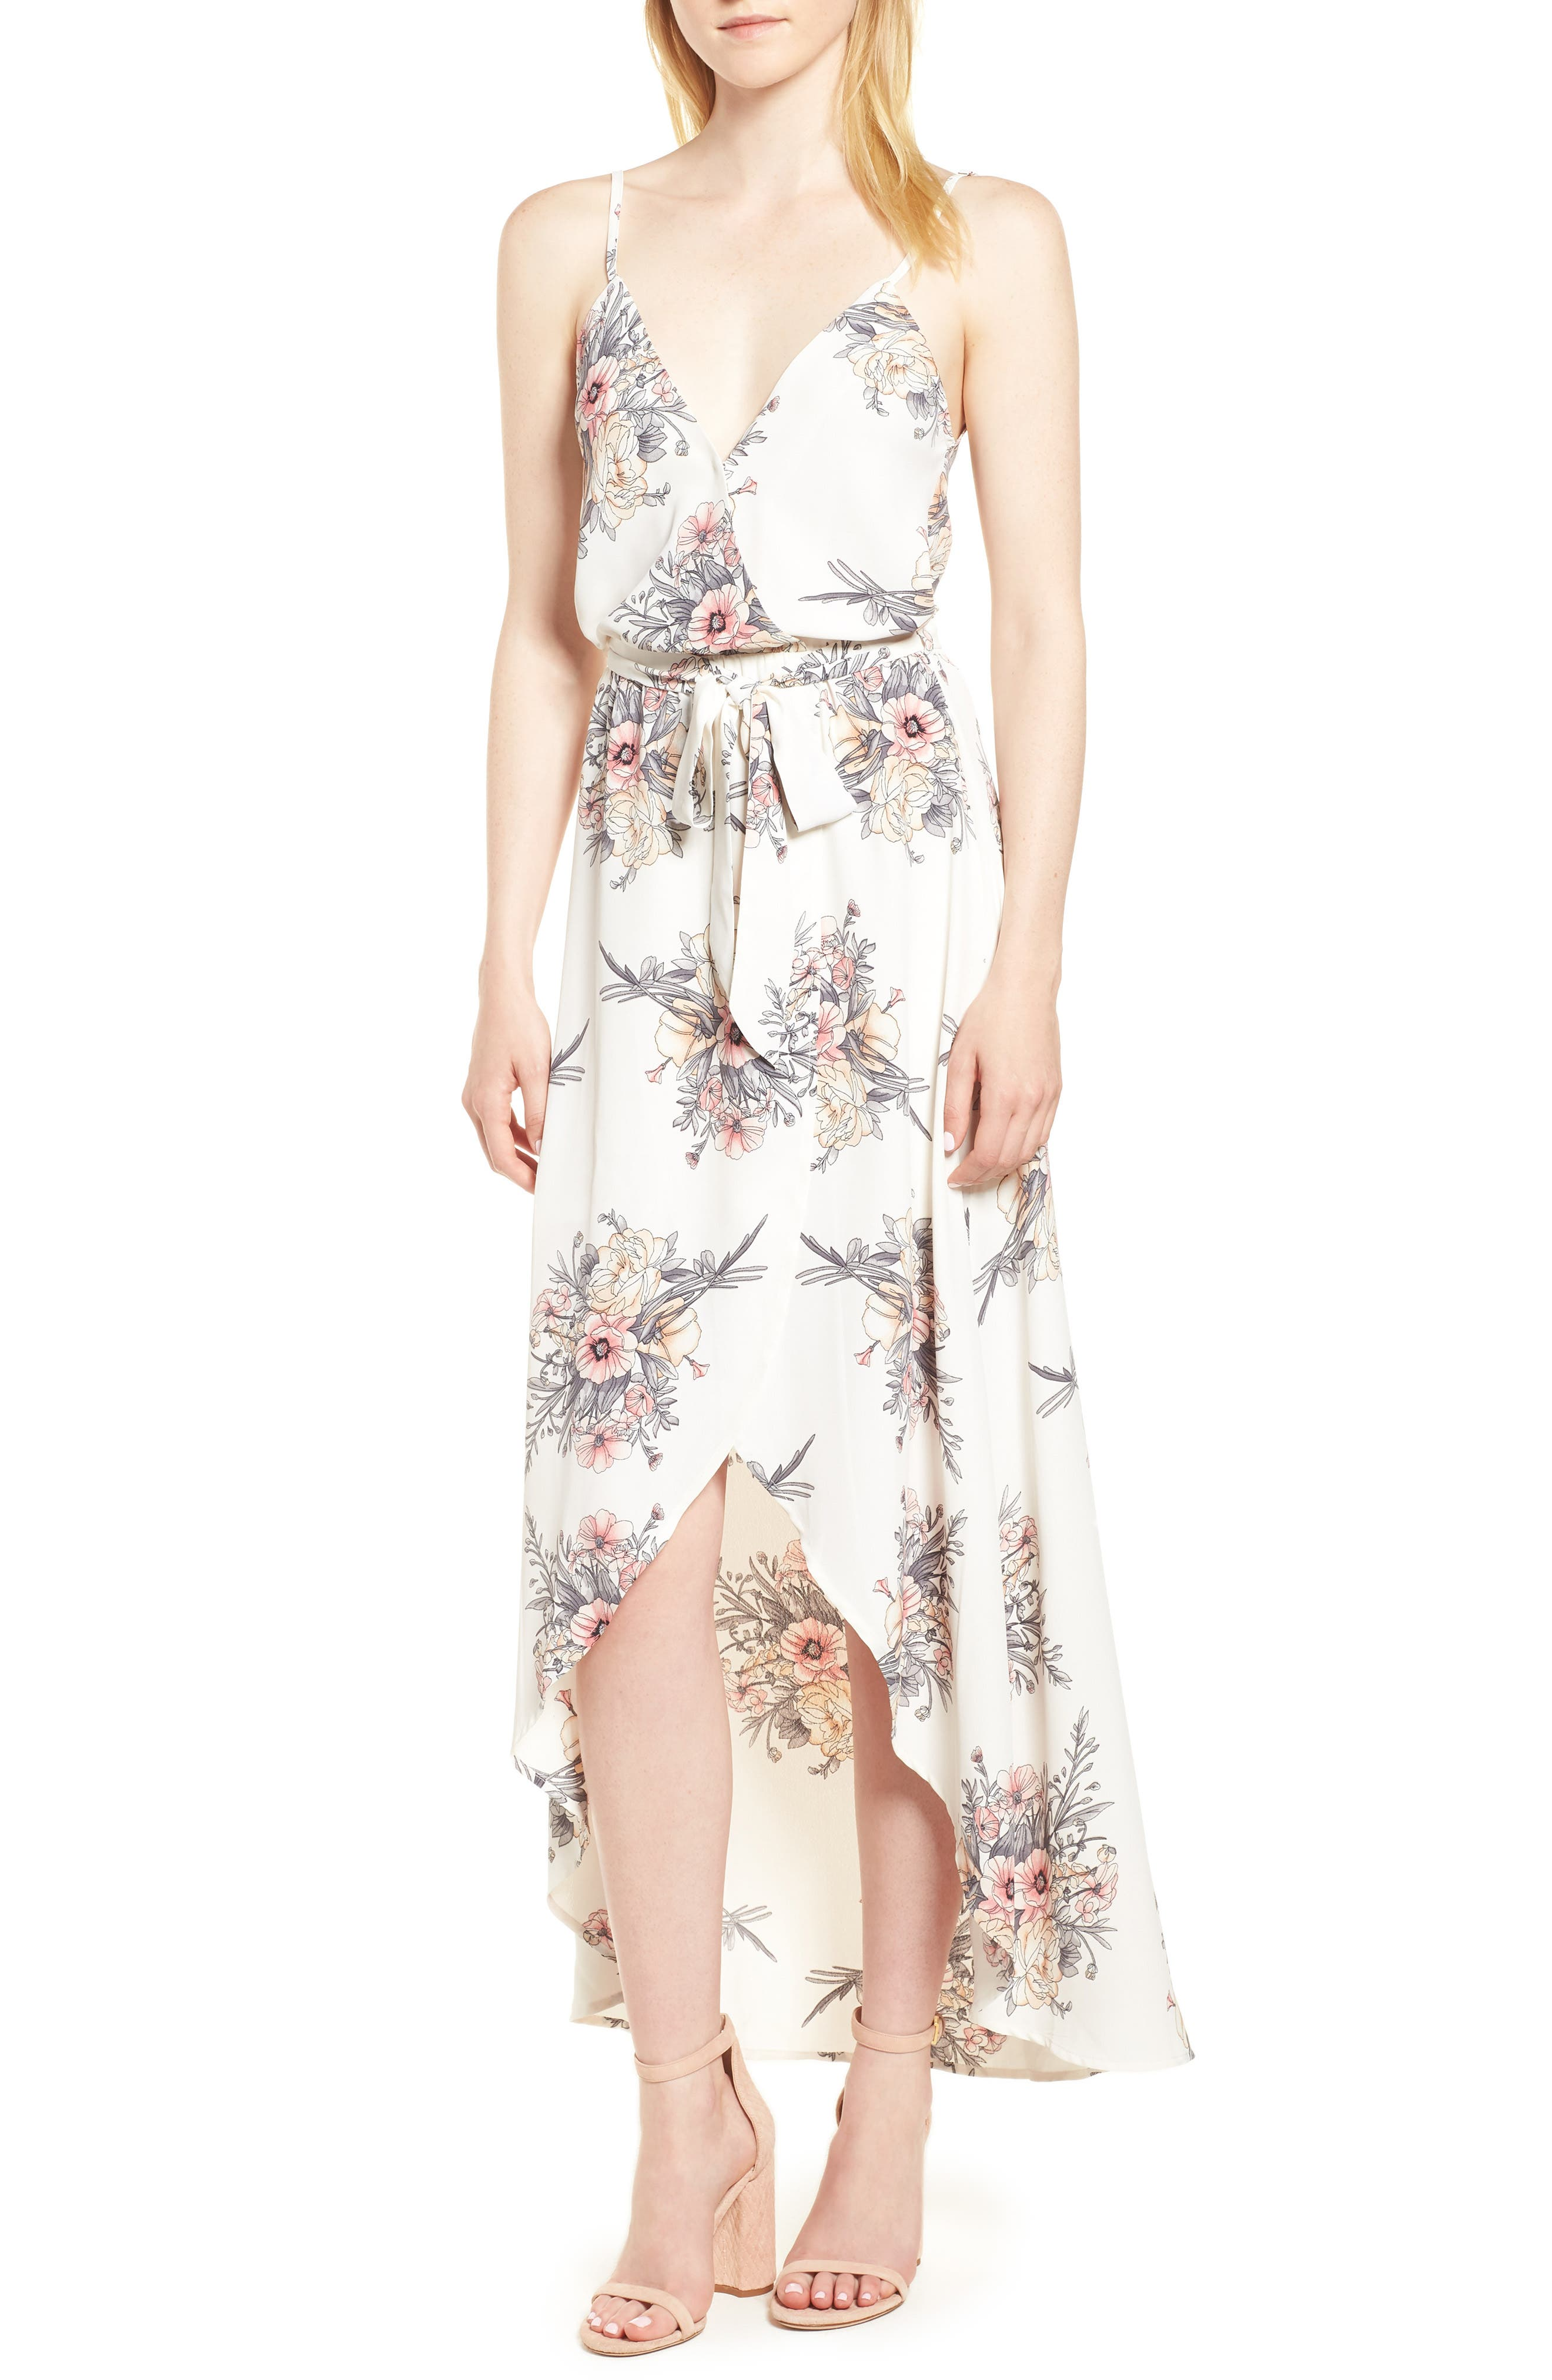 Bishop + Young Summer of Love Maxi Dress,                         Main,                         color, Summer Of Love Print